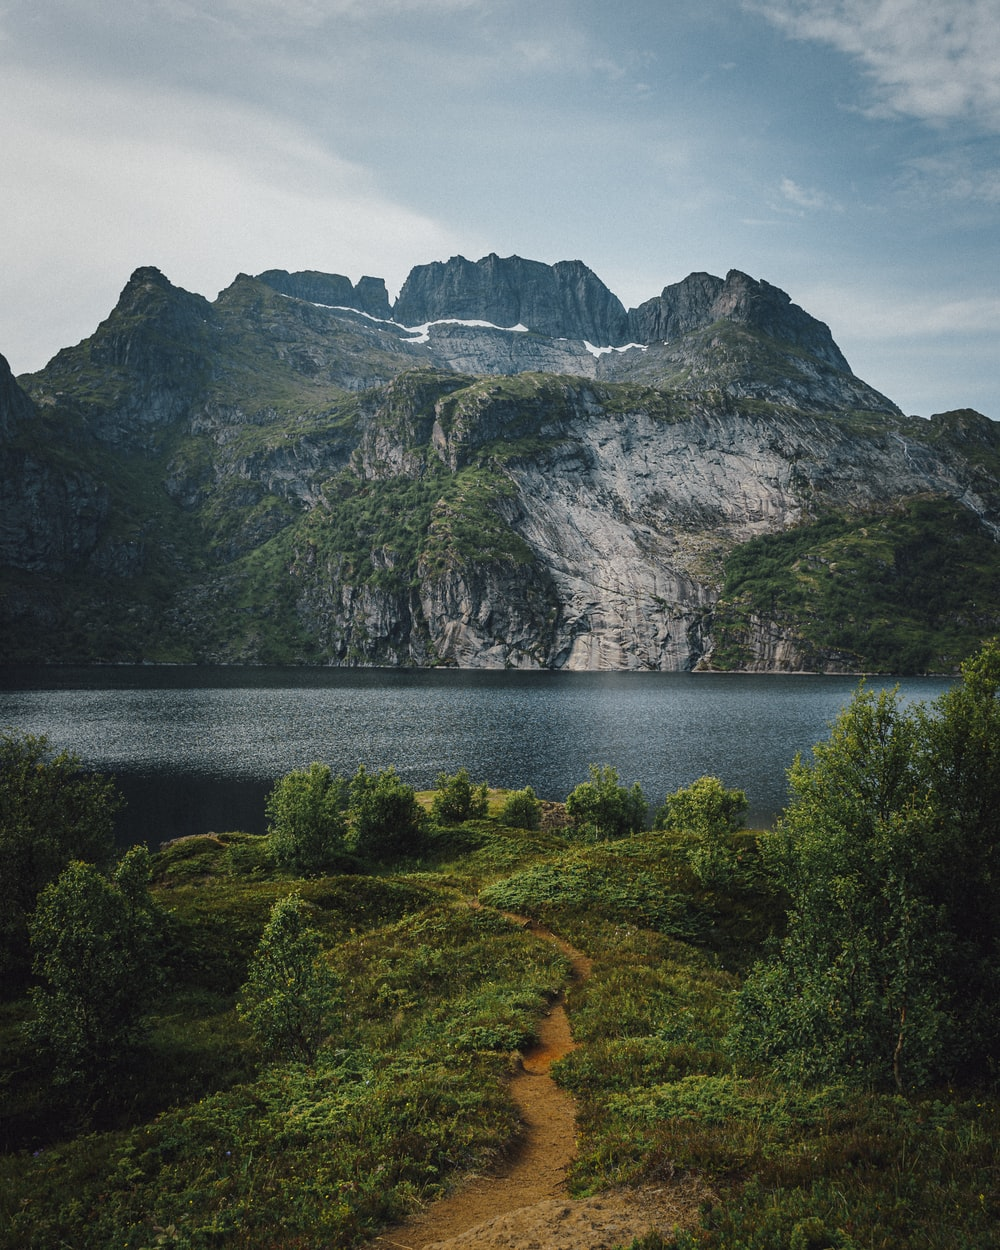 mountains near body of water